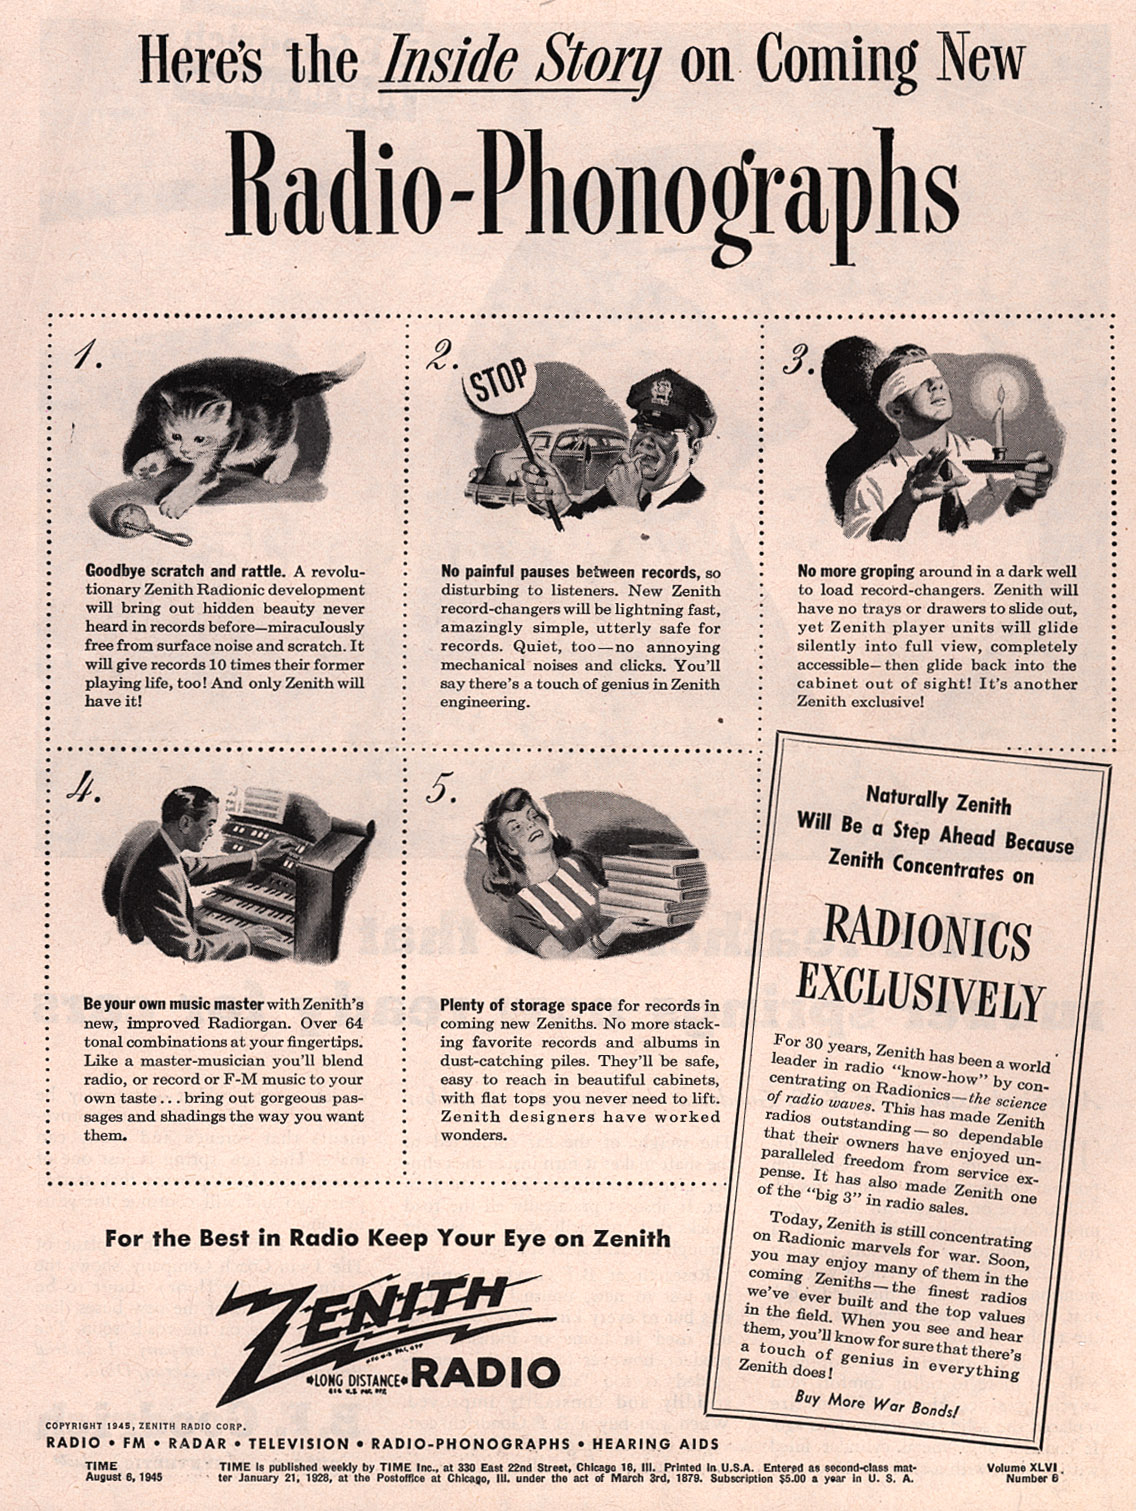 Heres_the_Inside_Story_on_Coming_New_Radio-Phonographs